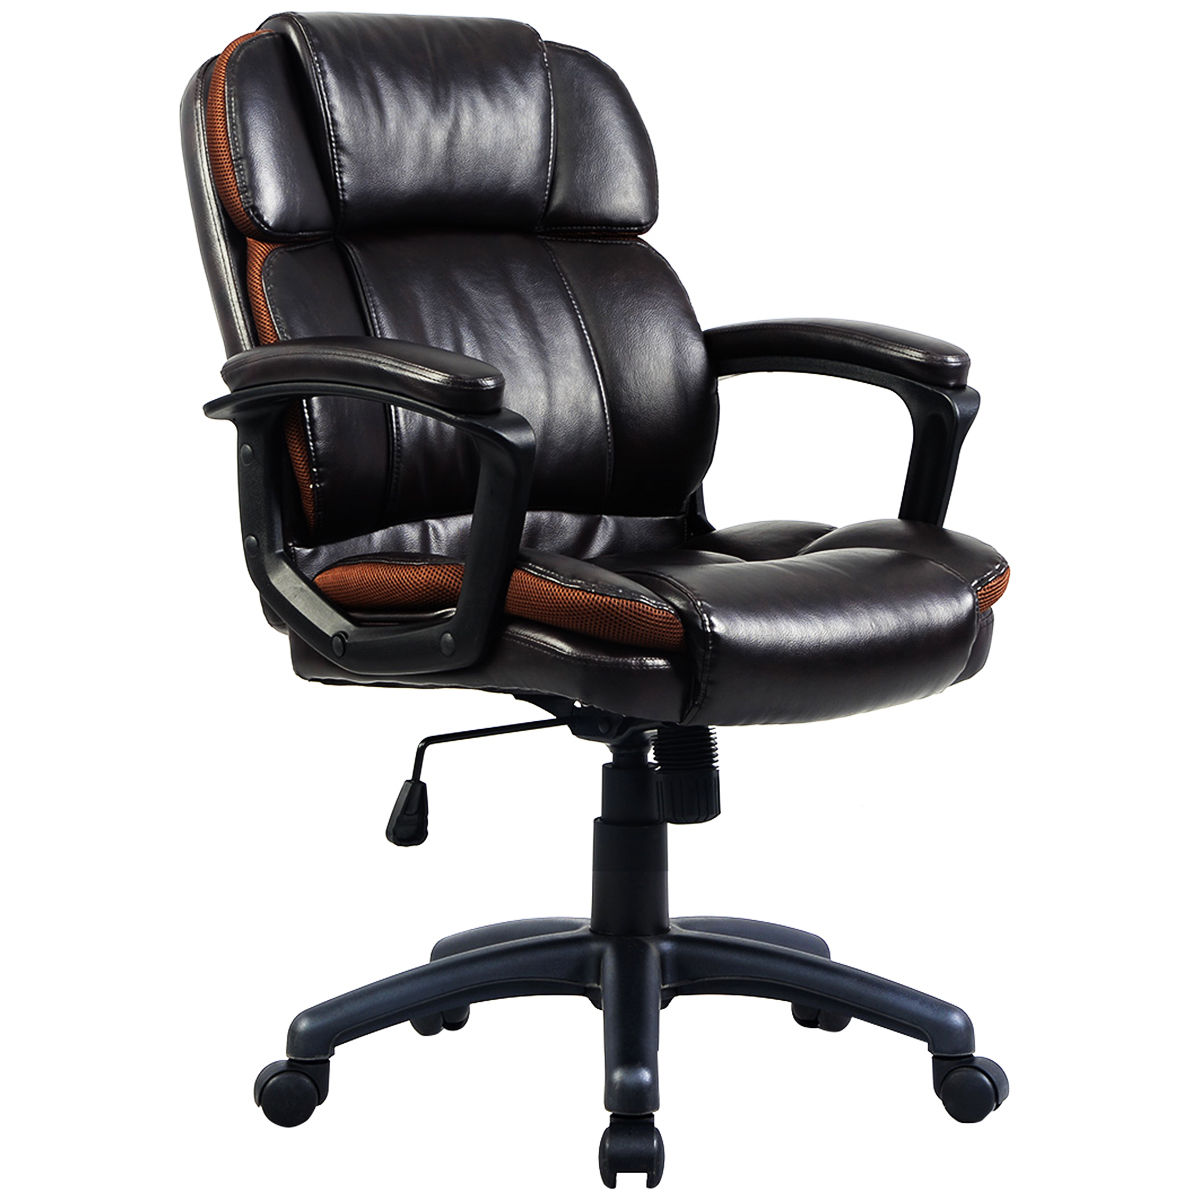 Giantex Ergonomic PU Leather Mid Back Swivel Gaming Chair